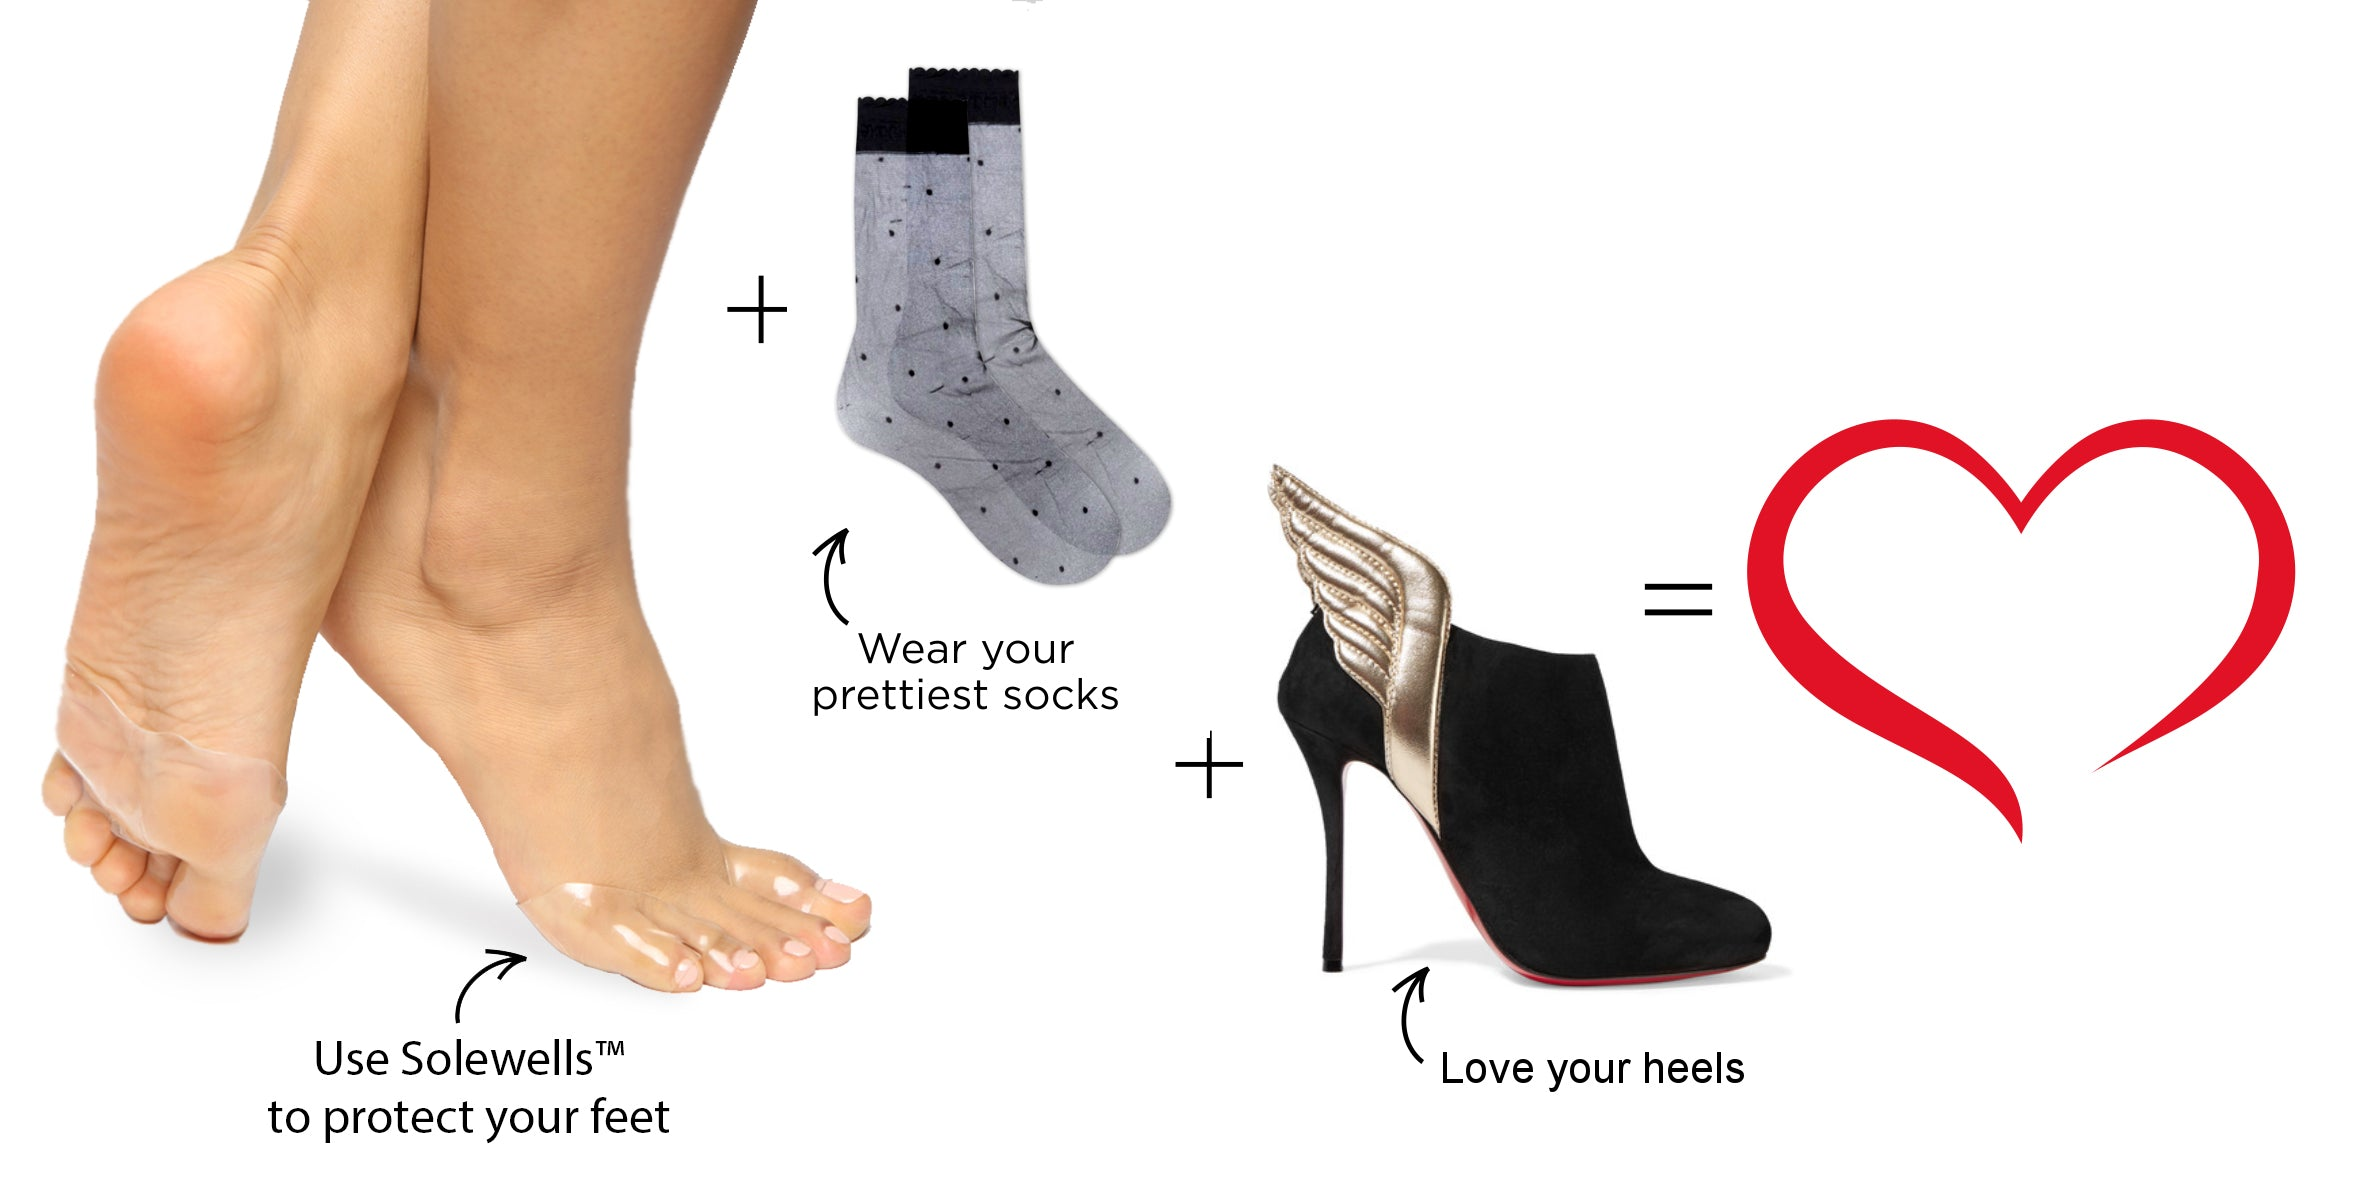 To prevent sensitive feet and blisters wear Solewells footpads with Stockings